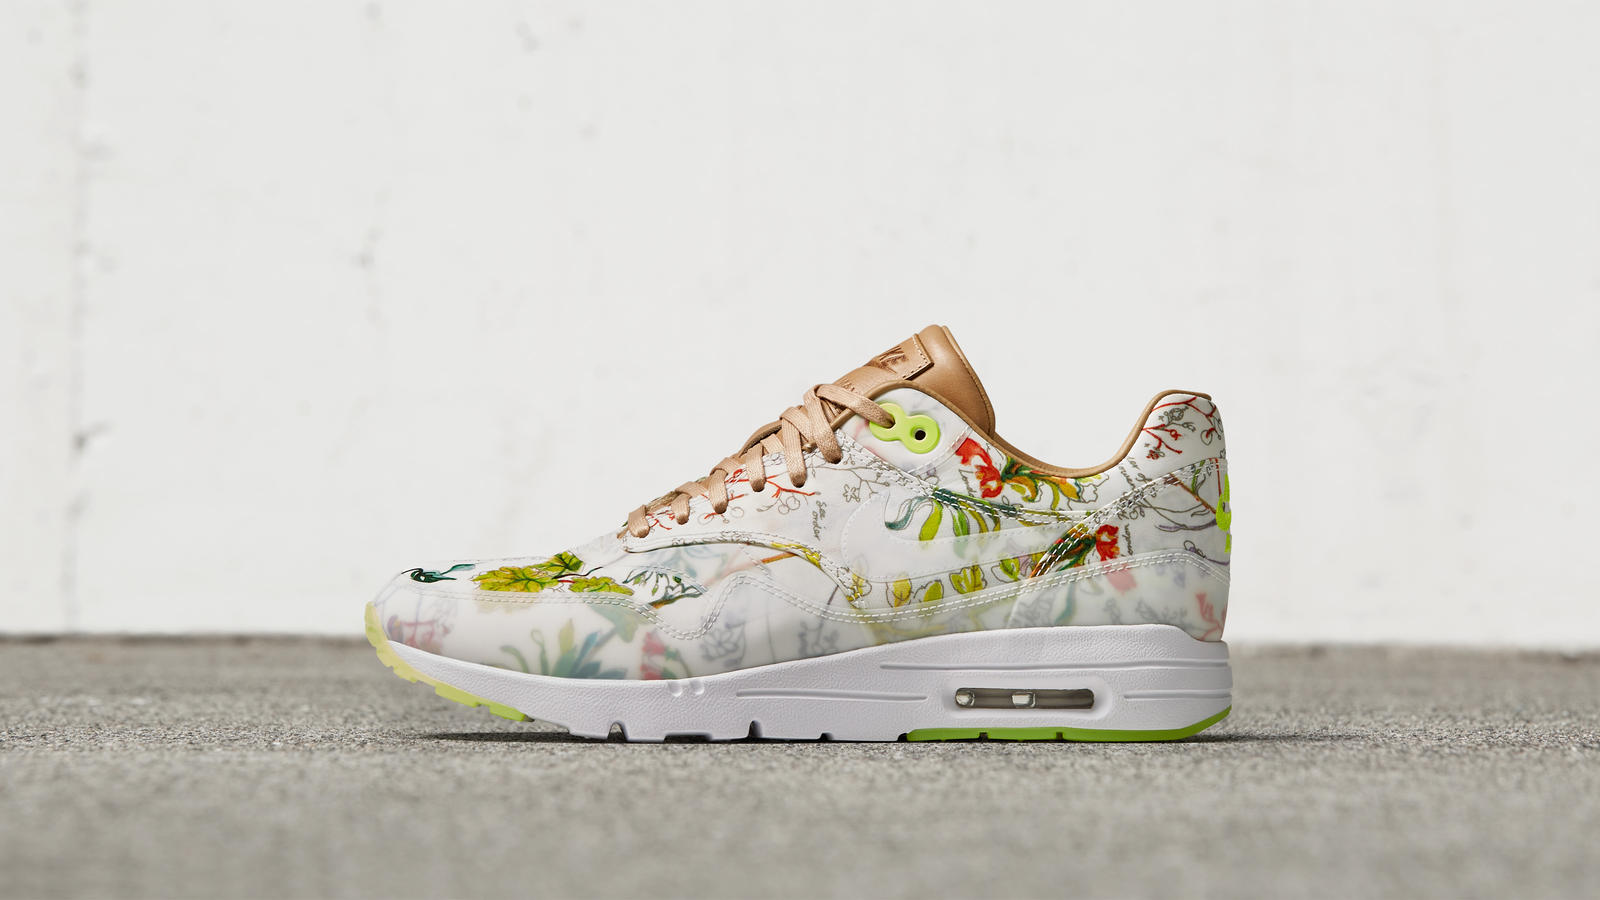 NikeCourt x Liberty Air Max 1 Nike News